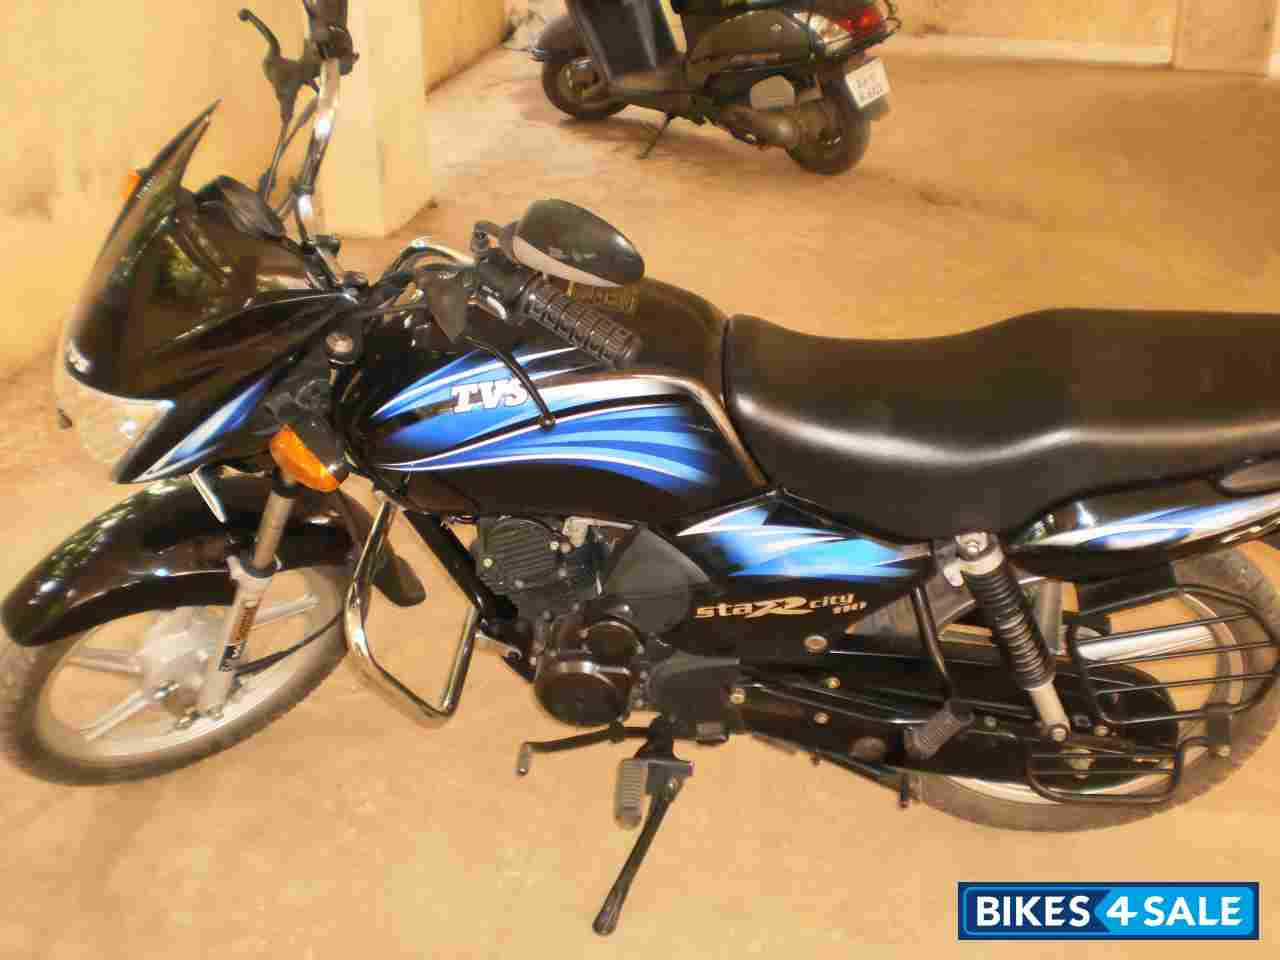 Olx Bike Price 2017 2018 Honda Reviews